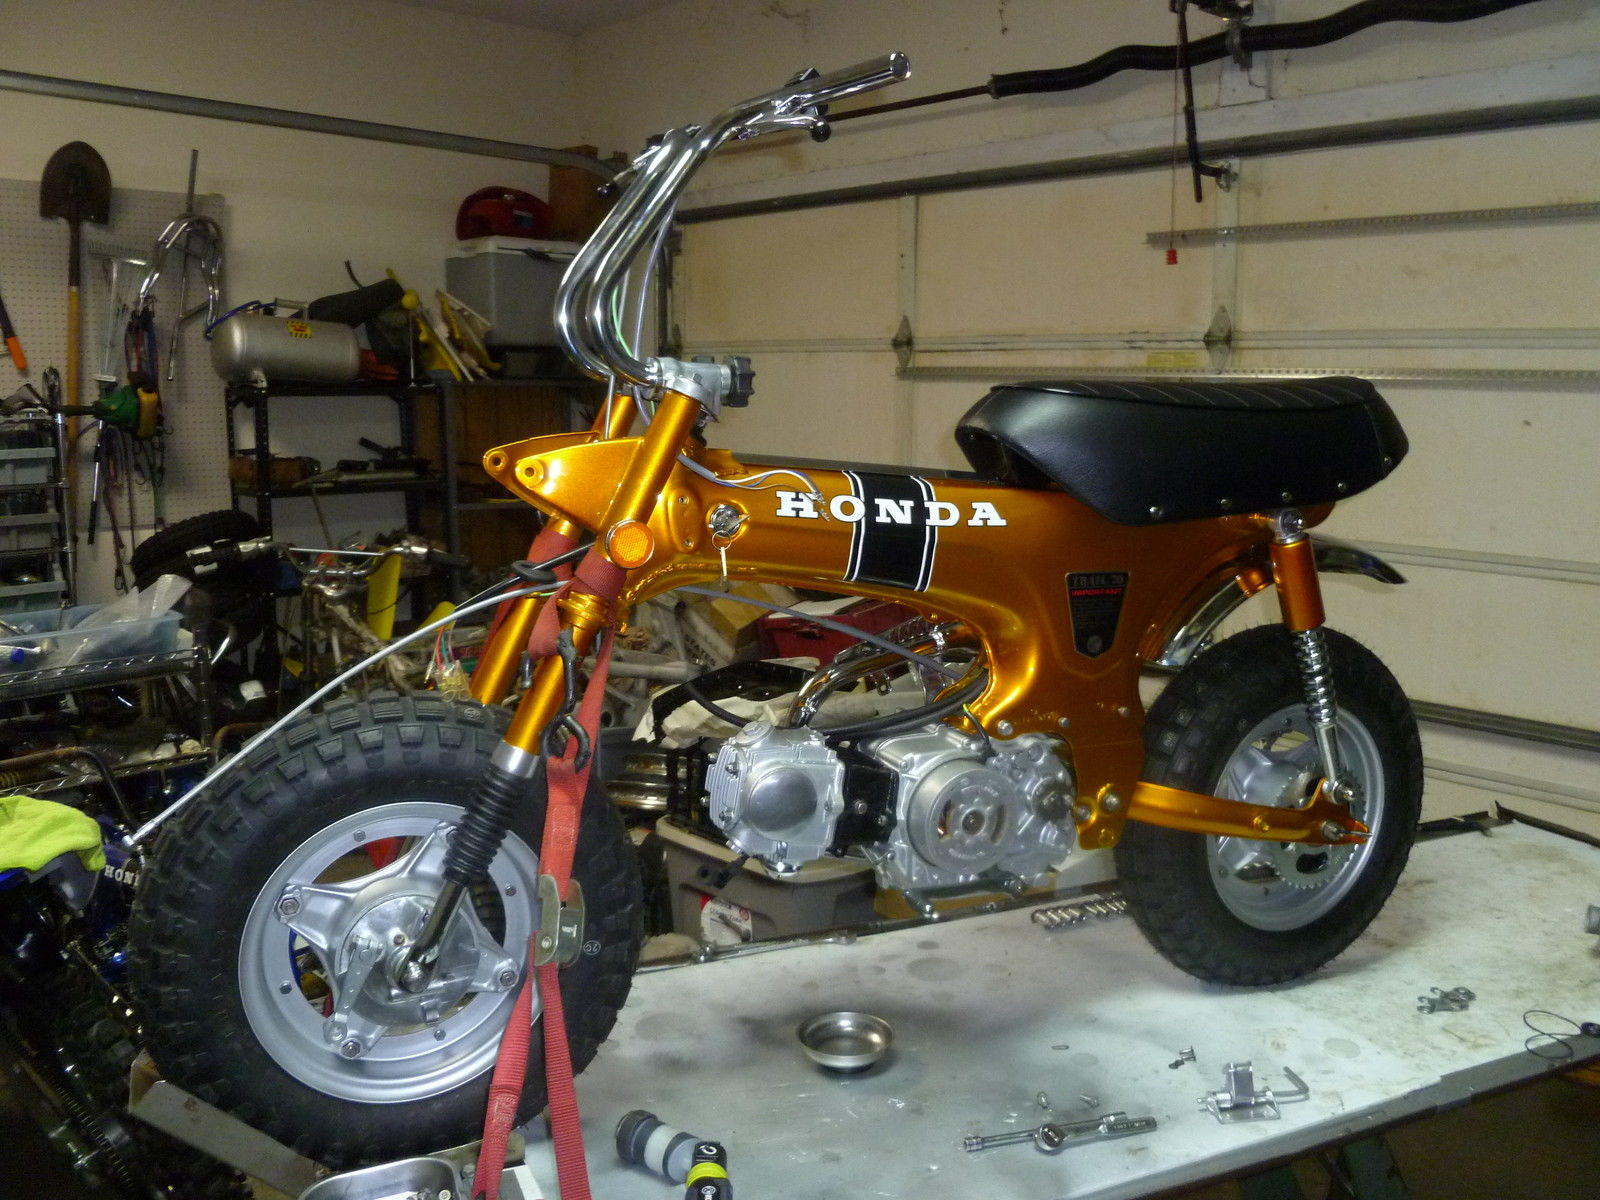 Honda Ct70 Ko Candy Gold 3 Speed Like New Restored And Ready To Ship 1970 Carburetor Ct